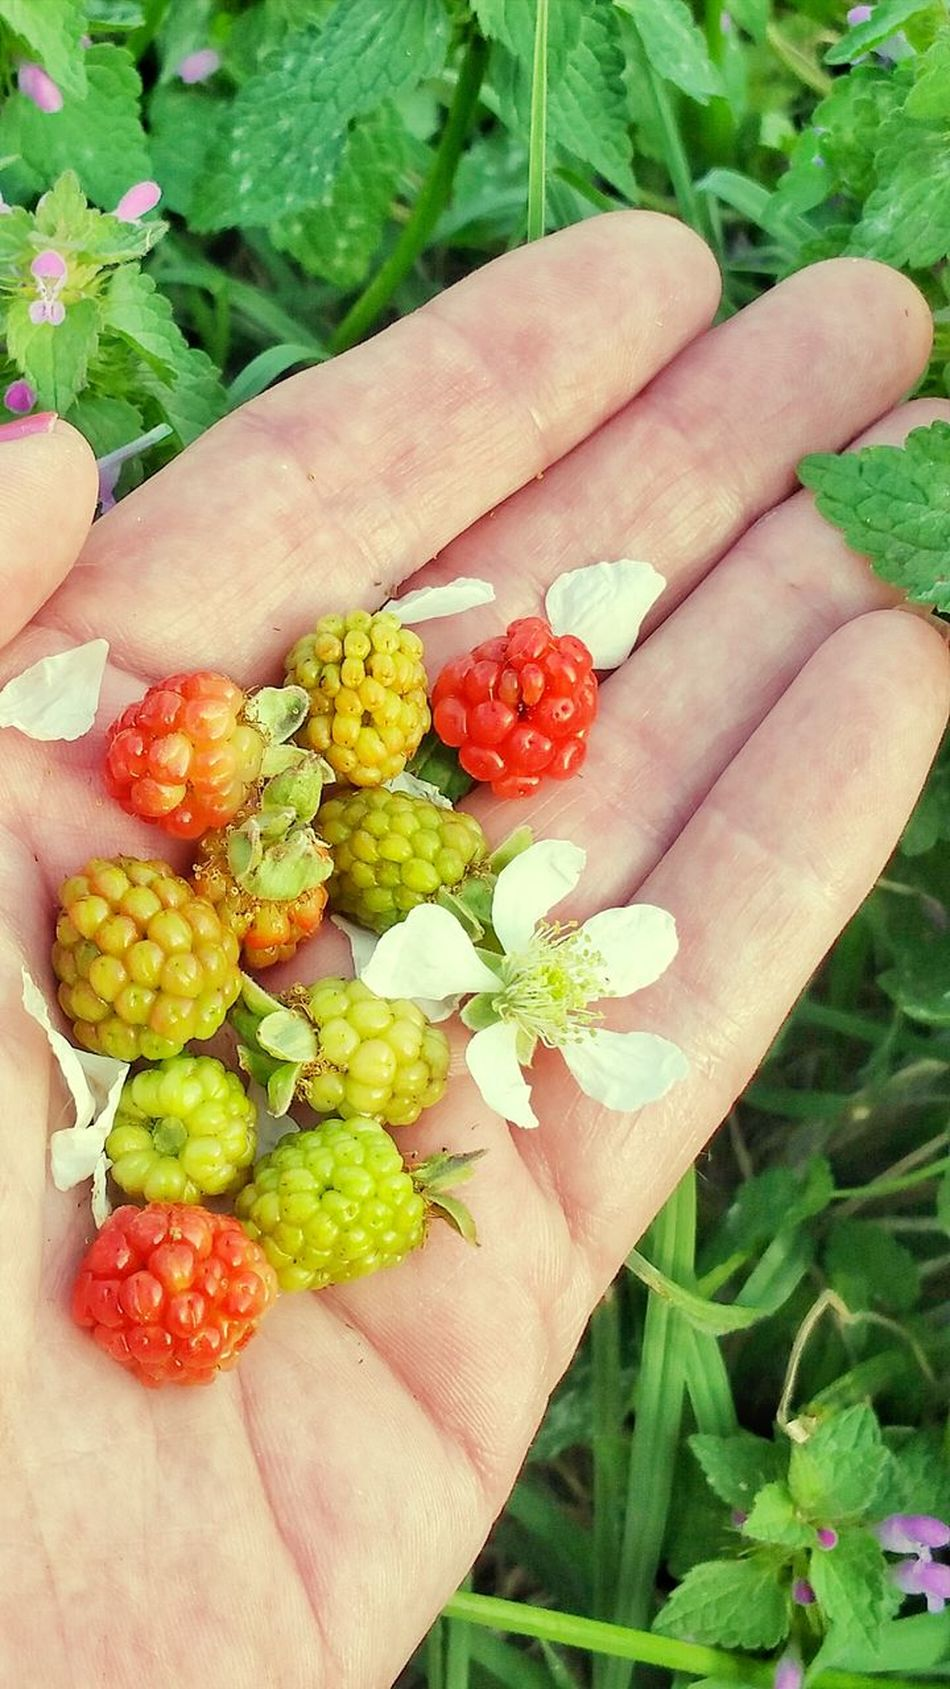 Human Hand One Person Holding Close-up Leaf Healthy Eating Fruit Freshness Outdoors Backgrounds Blackberry Dew Berries Variation Unripe Palm Room For Text Wild Blackberries Berry Fruit Freshness Flower Multi Colored High Angle View Room For Copy Lifestyles Beauty In Nature